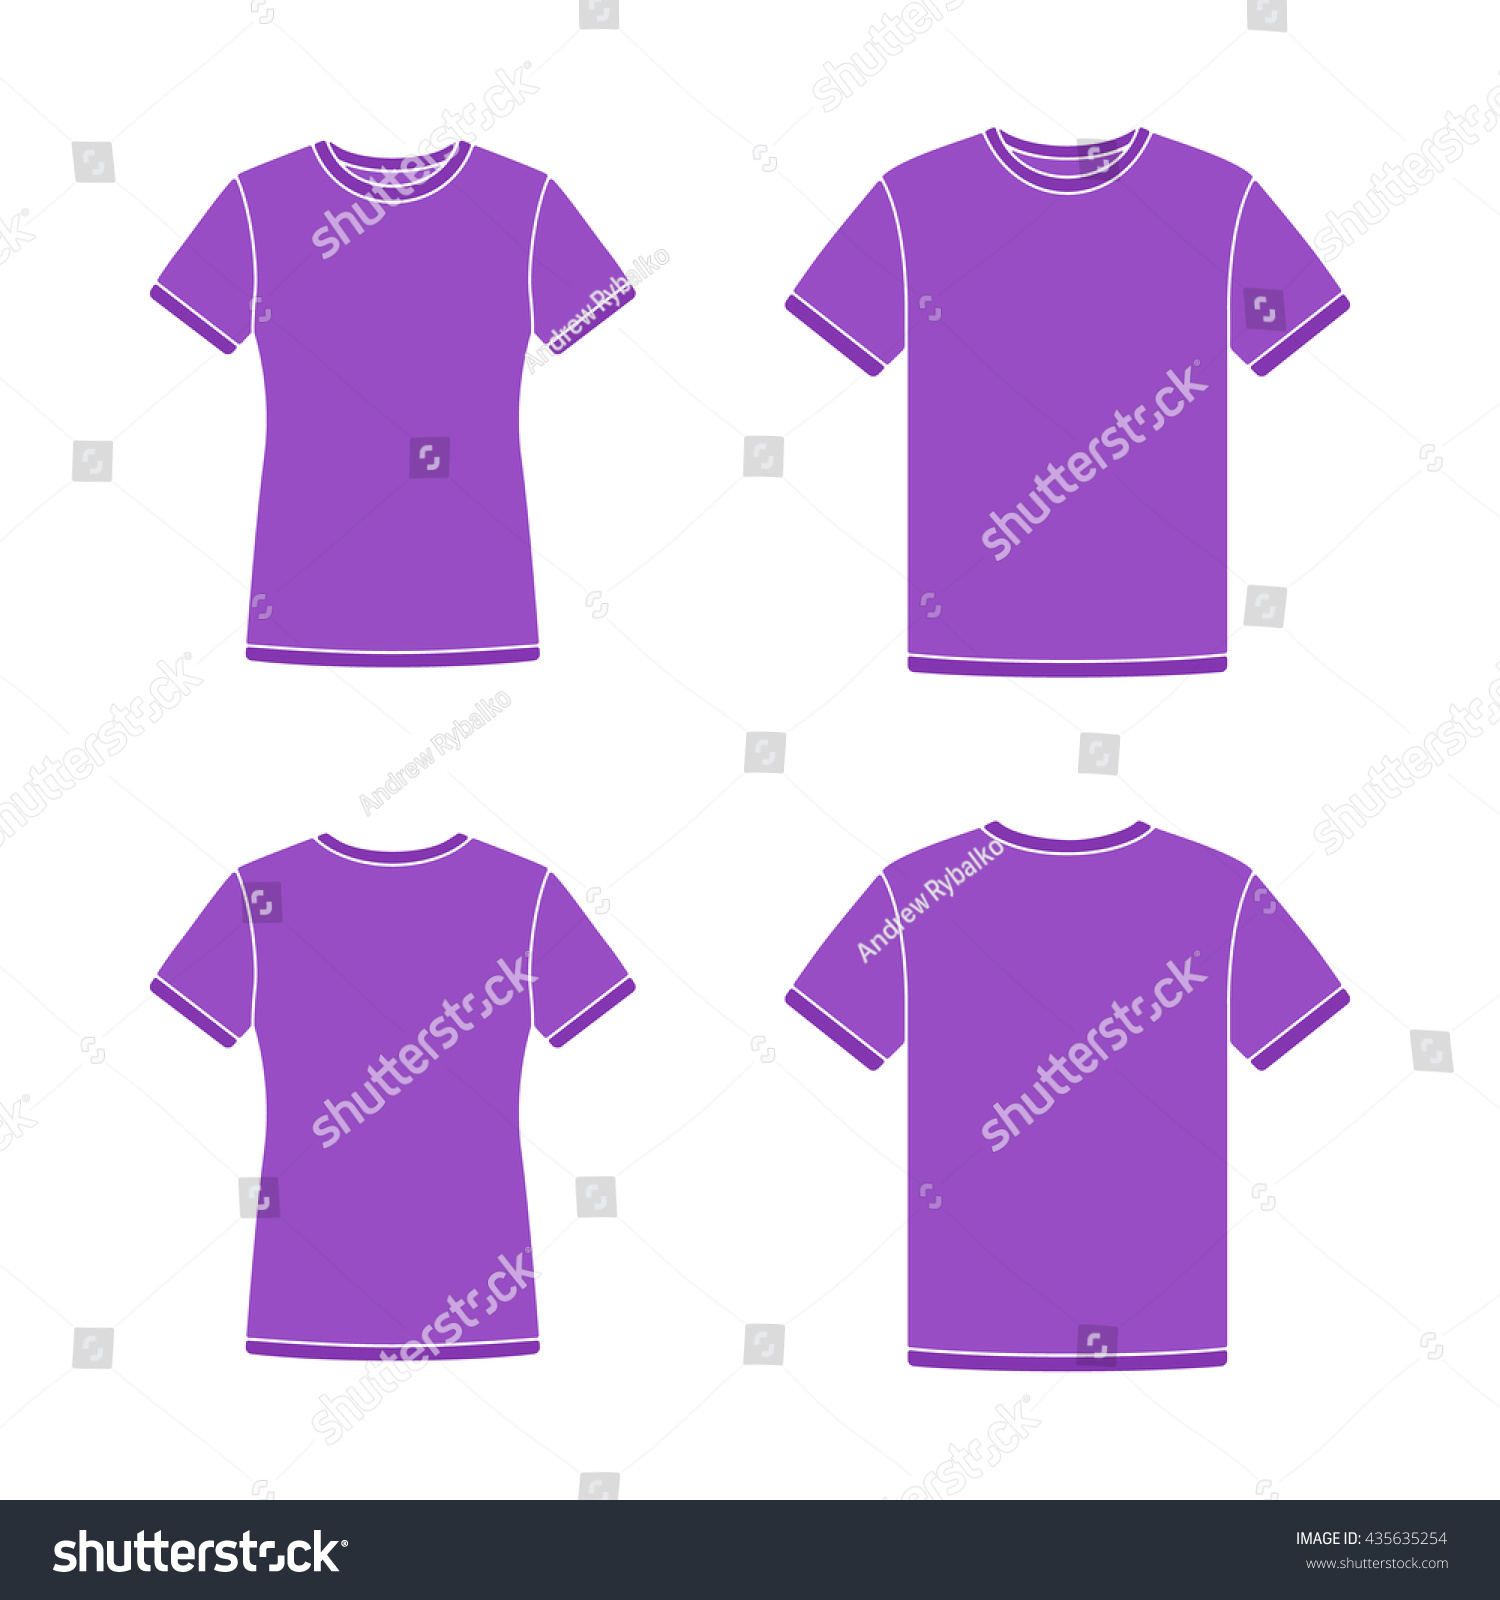 T shirt transfer template 28 images avery t shirt for Free t shirt transfer templates